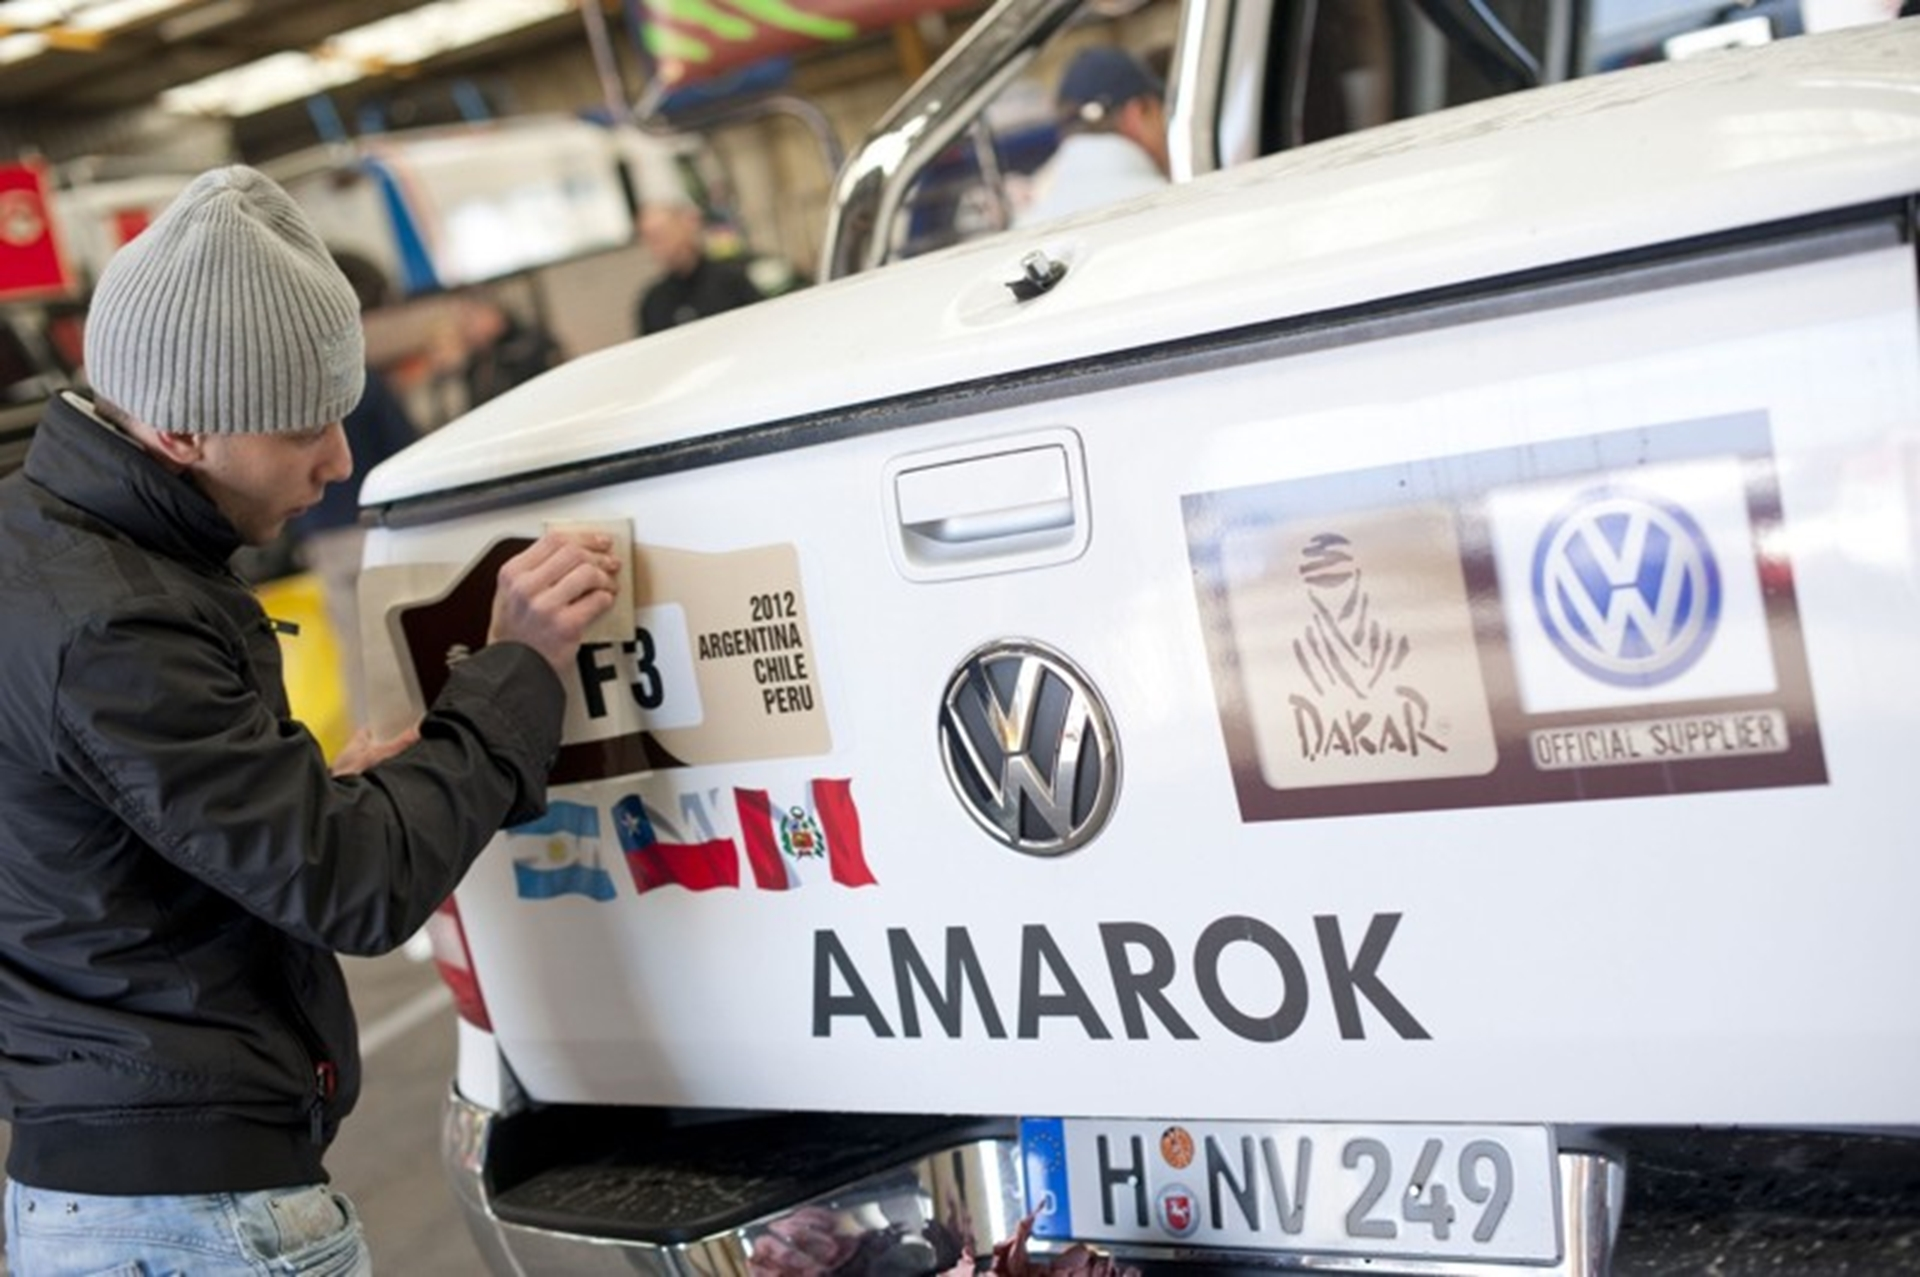 Up to the challenge: Amarok supports the 2012 Dakar Rally